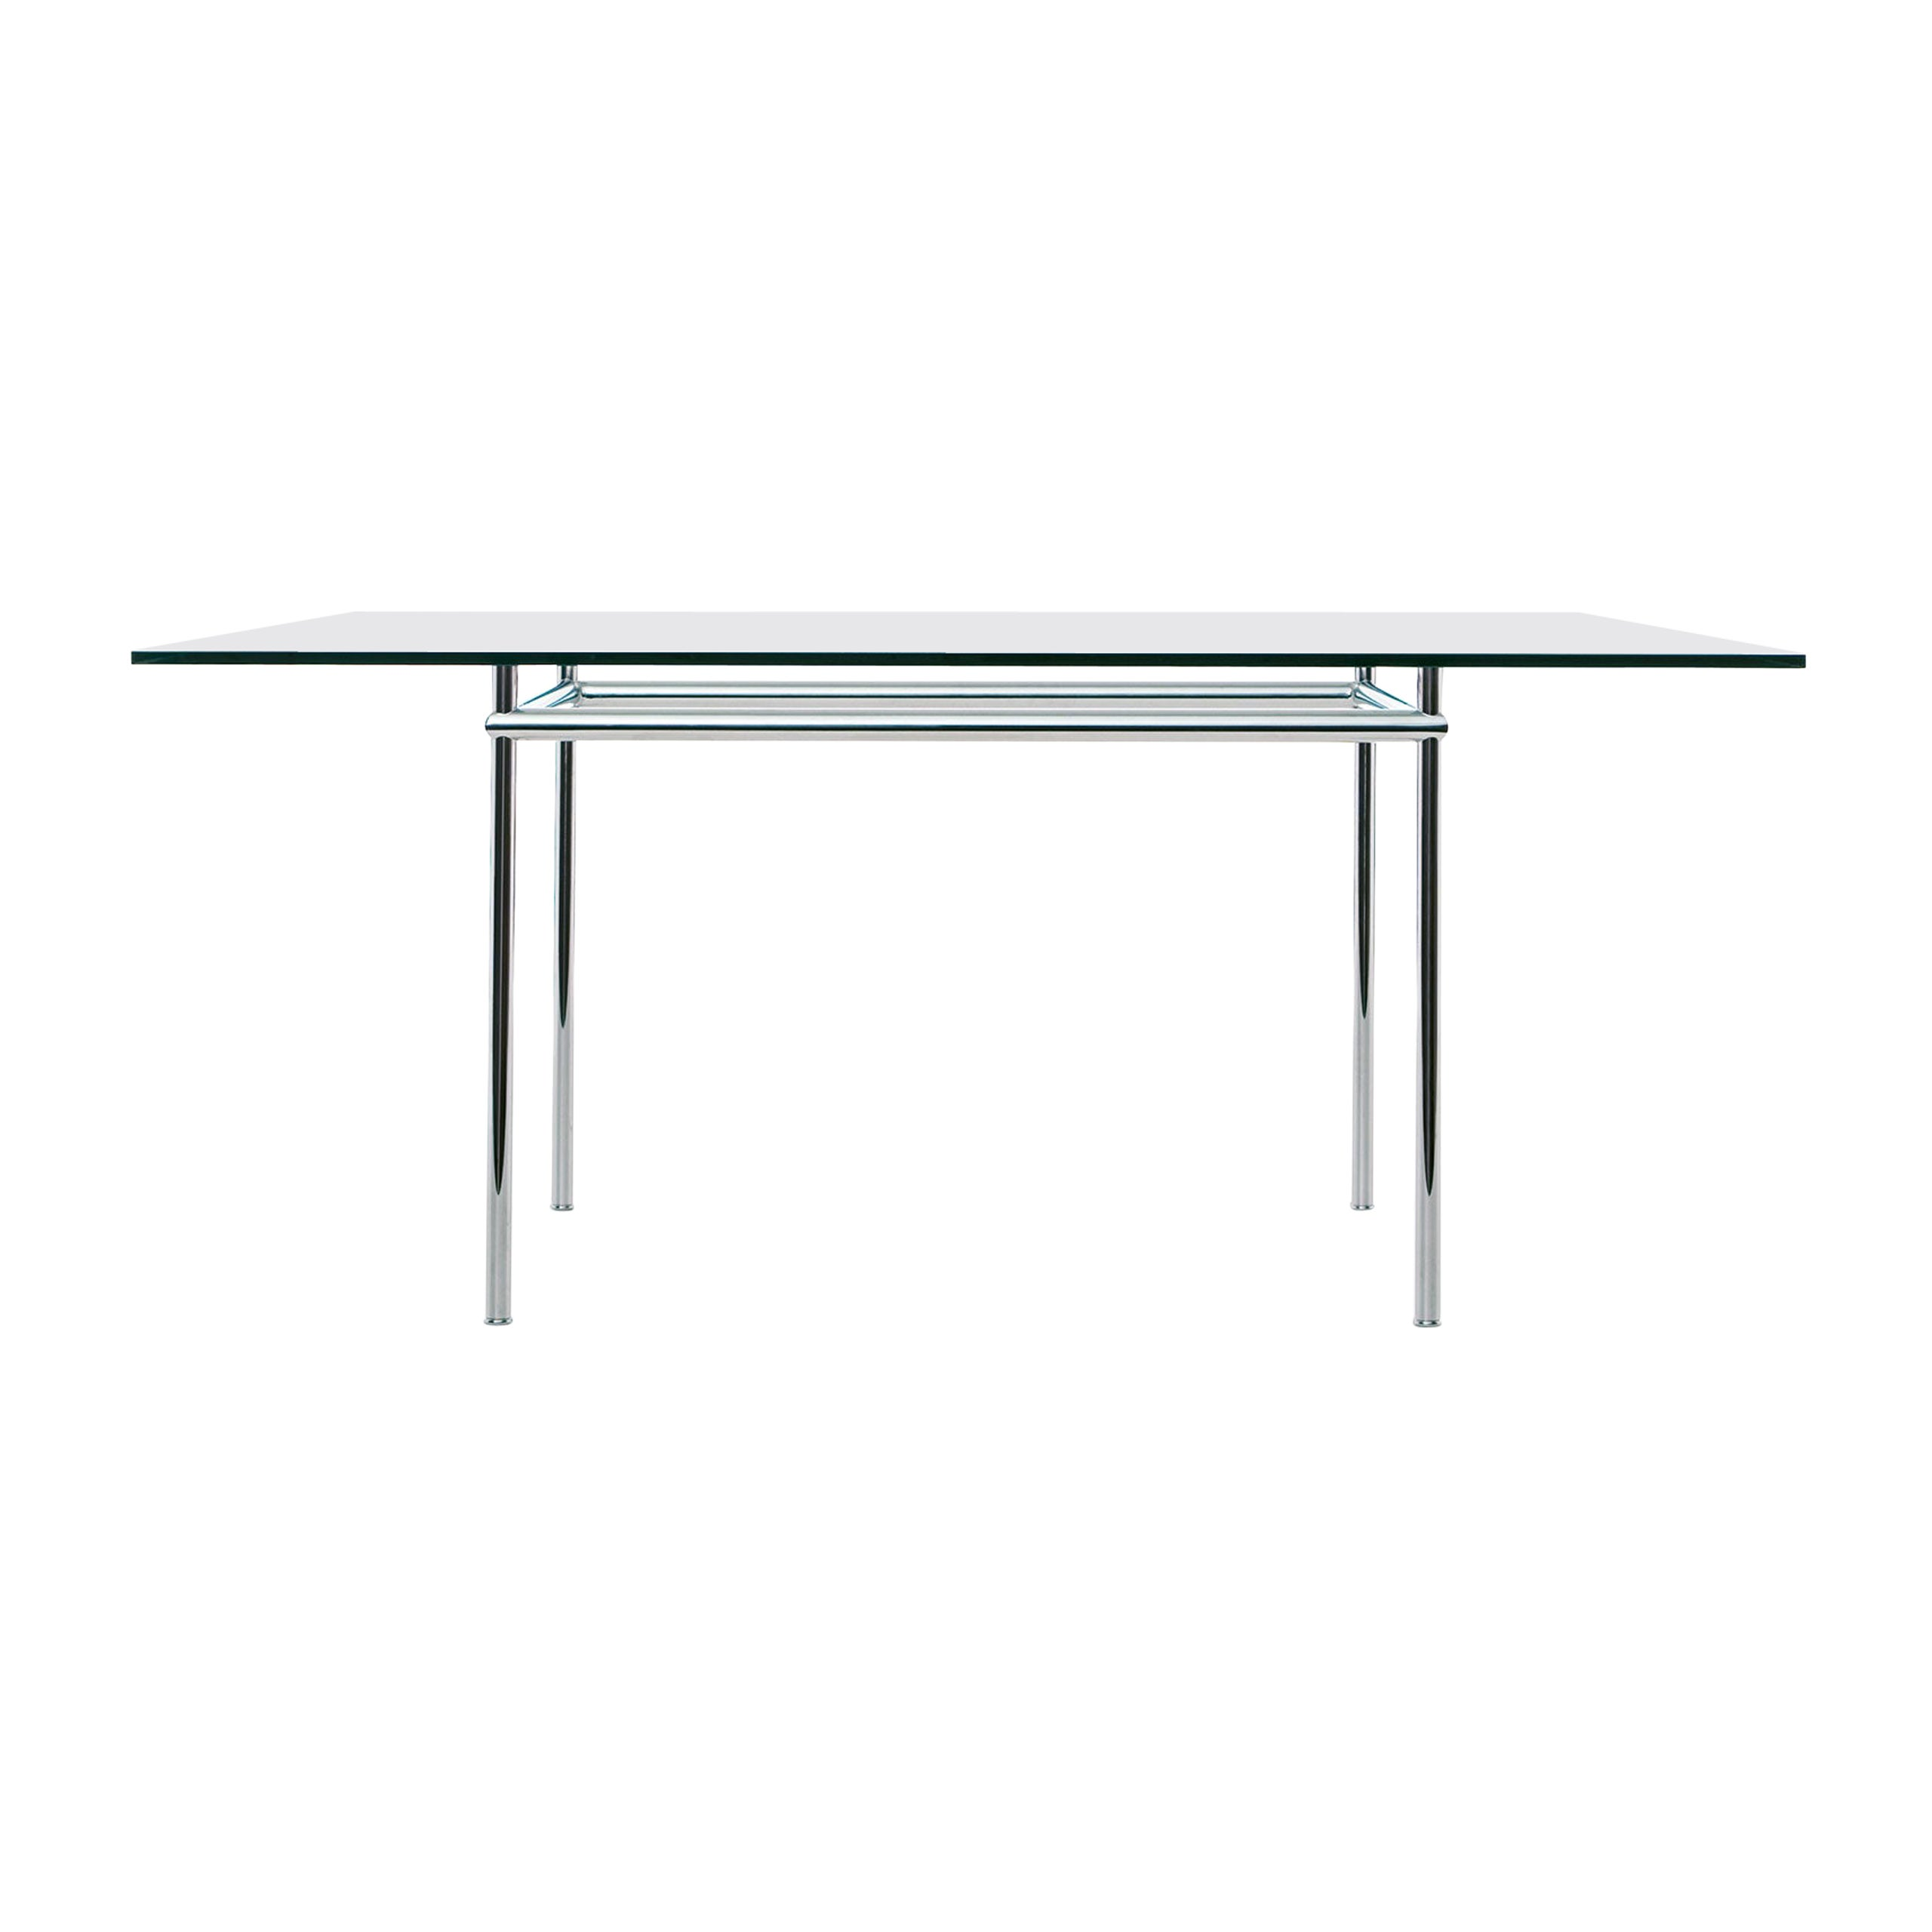 Pierre Jeanneret and Le Corbusier LC12 La Roche Table, Steel and Glass